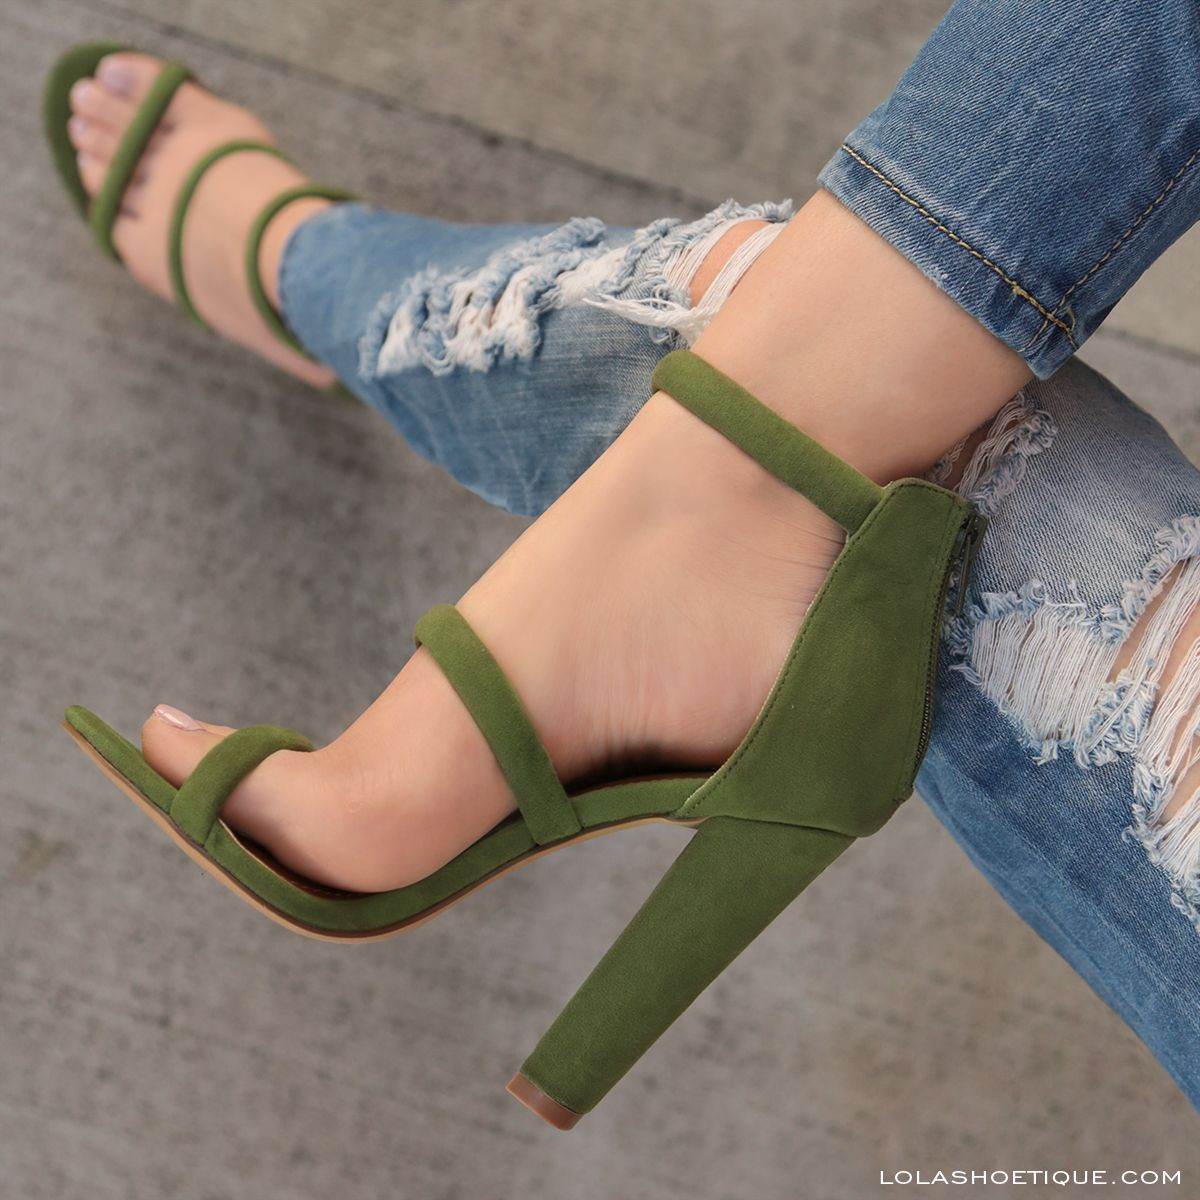 efeb6ff460e On The Line  lolashoetique  heels  strappy  new  olive  green  sexy  chic   stylish  style  fashion  fashionable  spring  summer  casual  ootd  sotd    ...